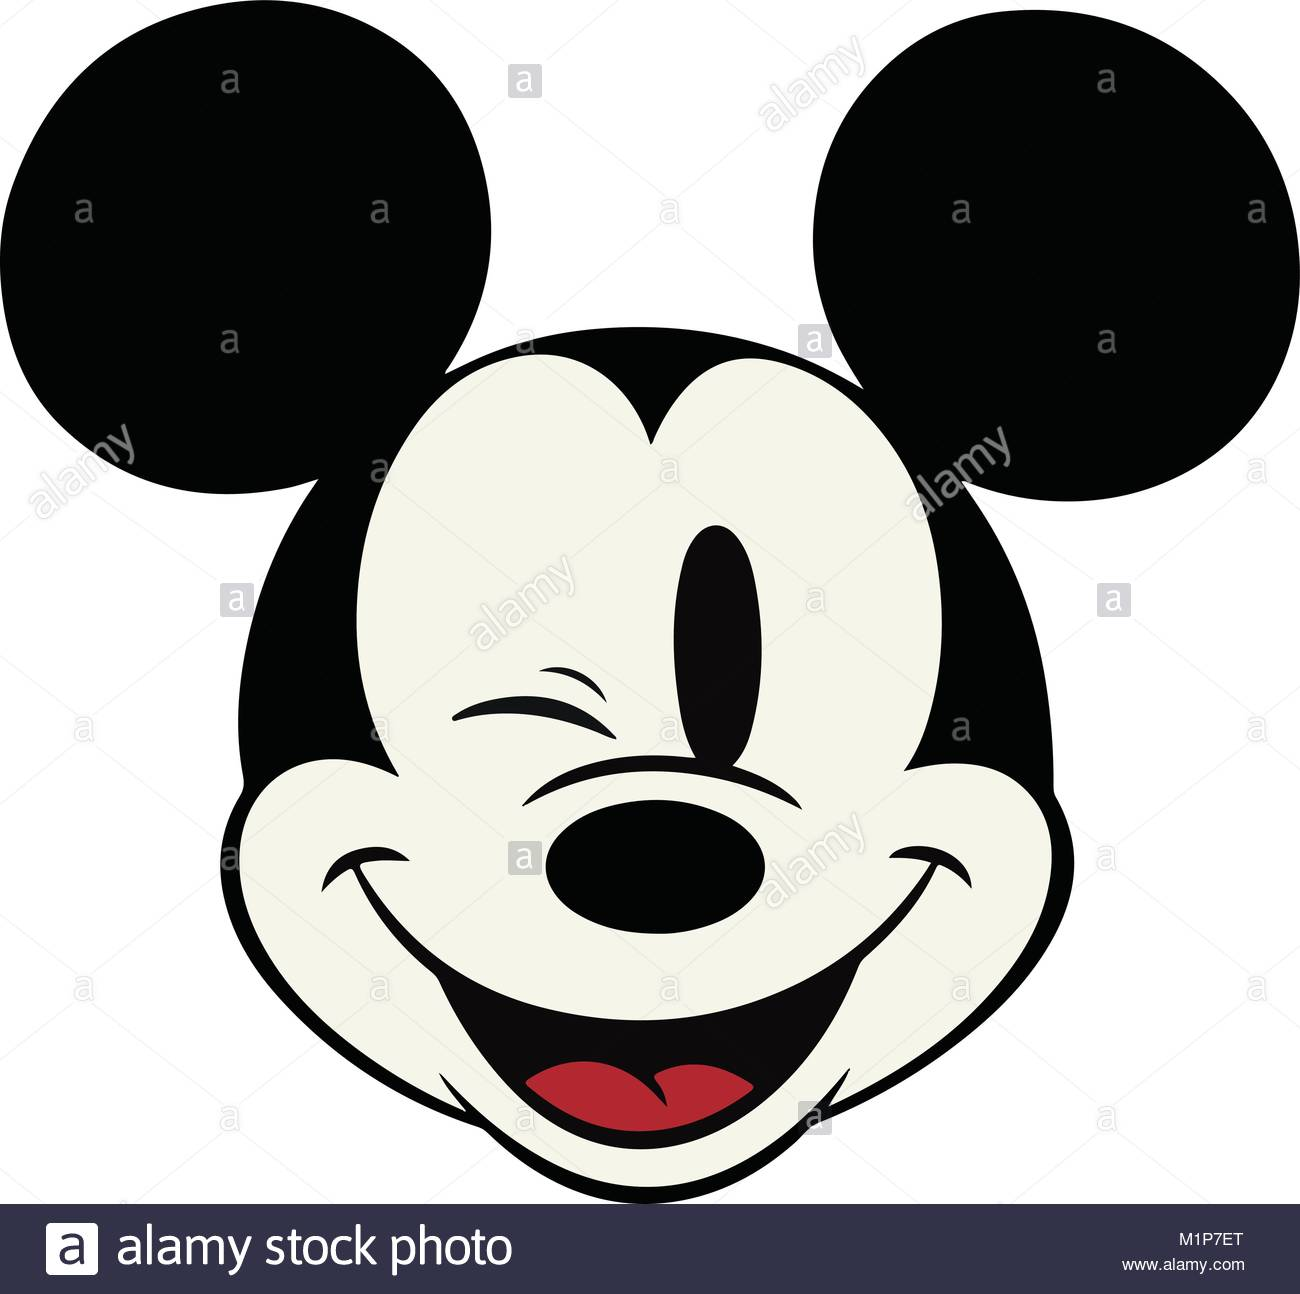 mickey mouse can be printedrescaled to any size scalable vector